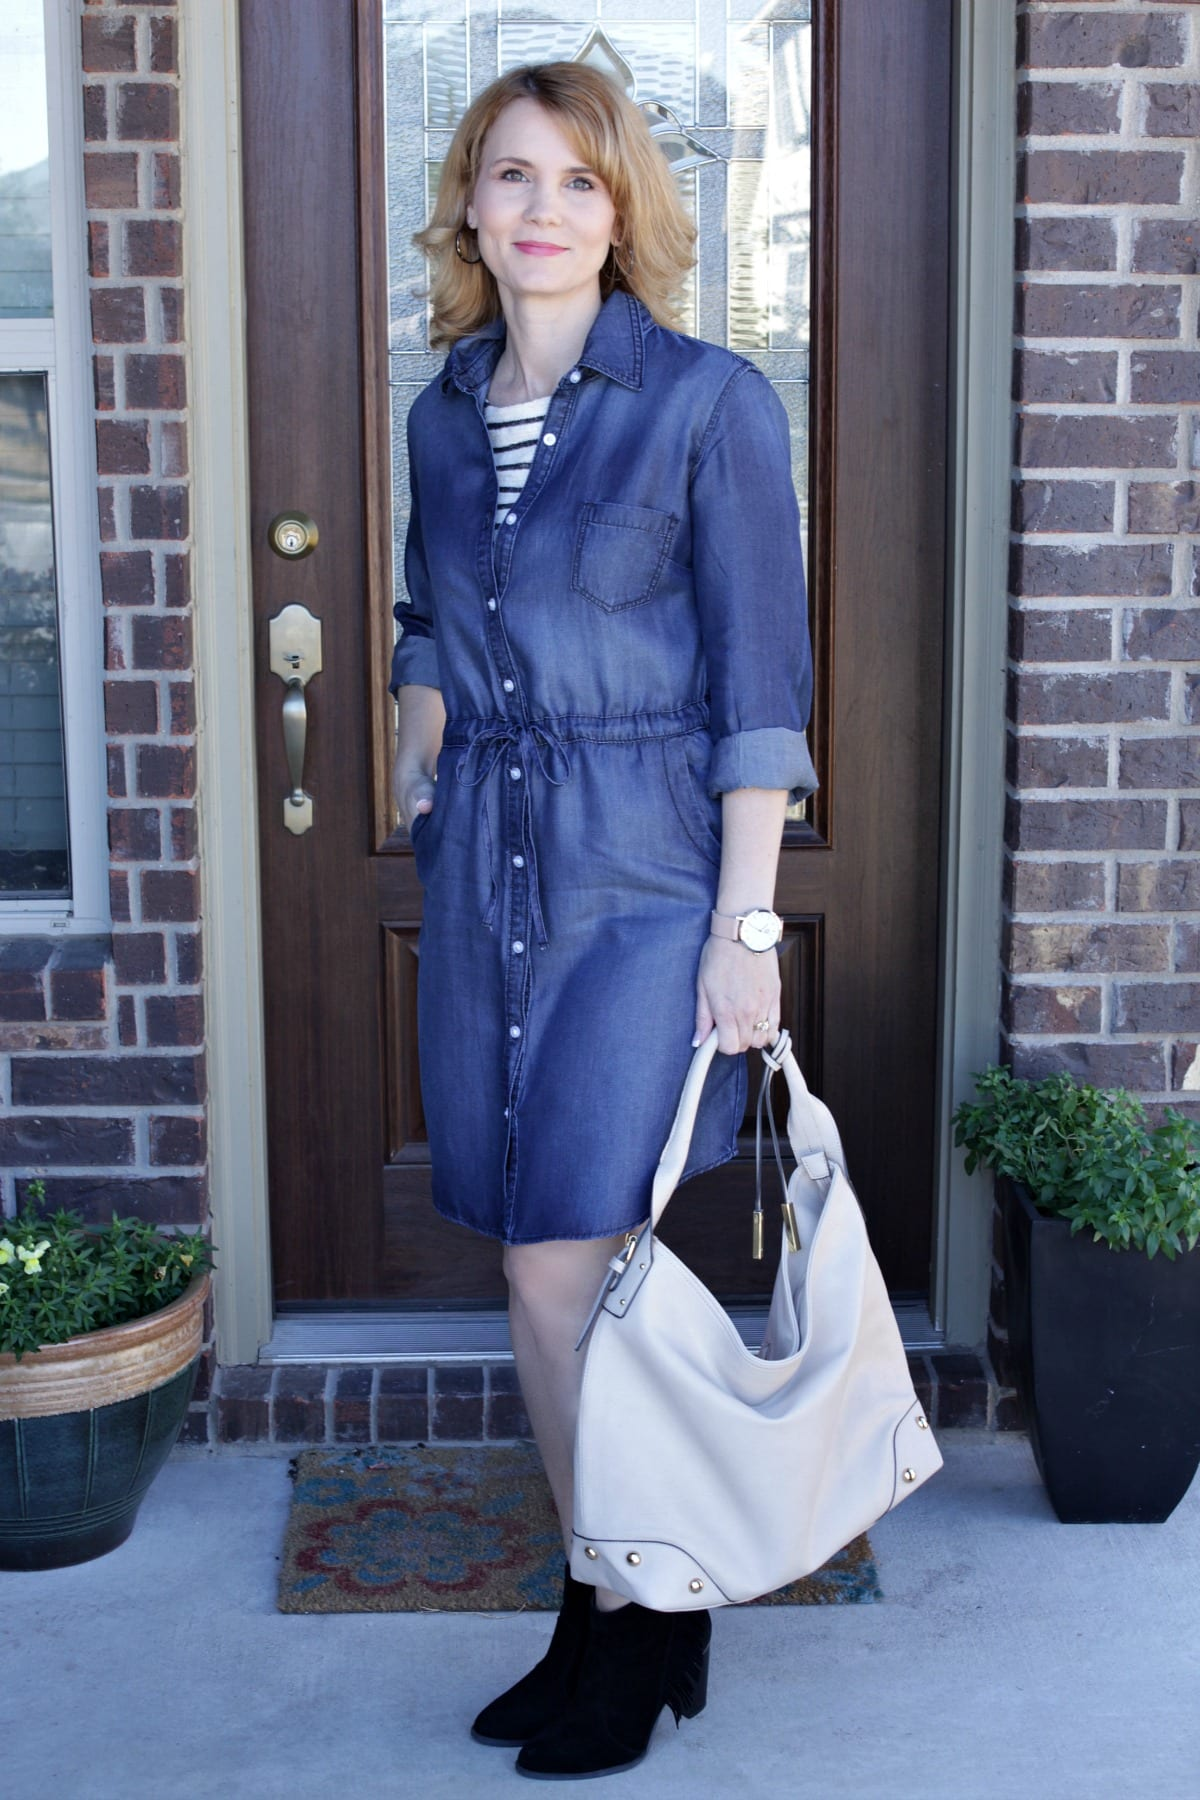 One Denim Dress: Three Ways To Wear It